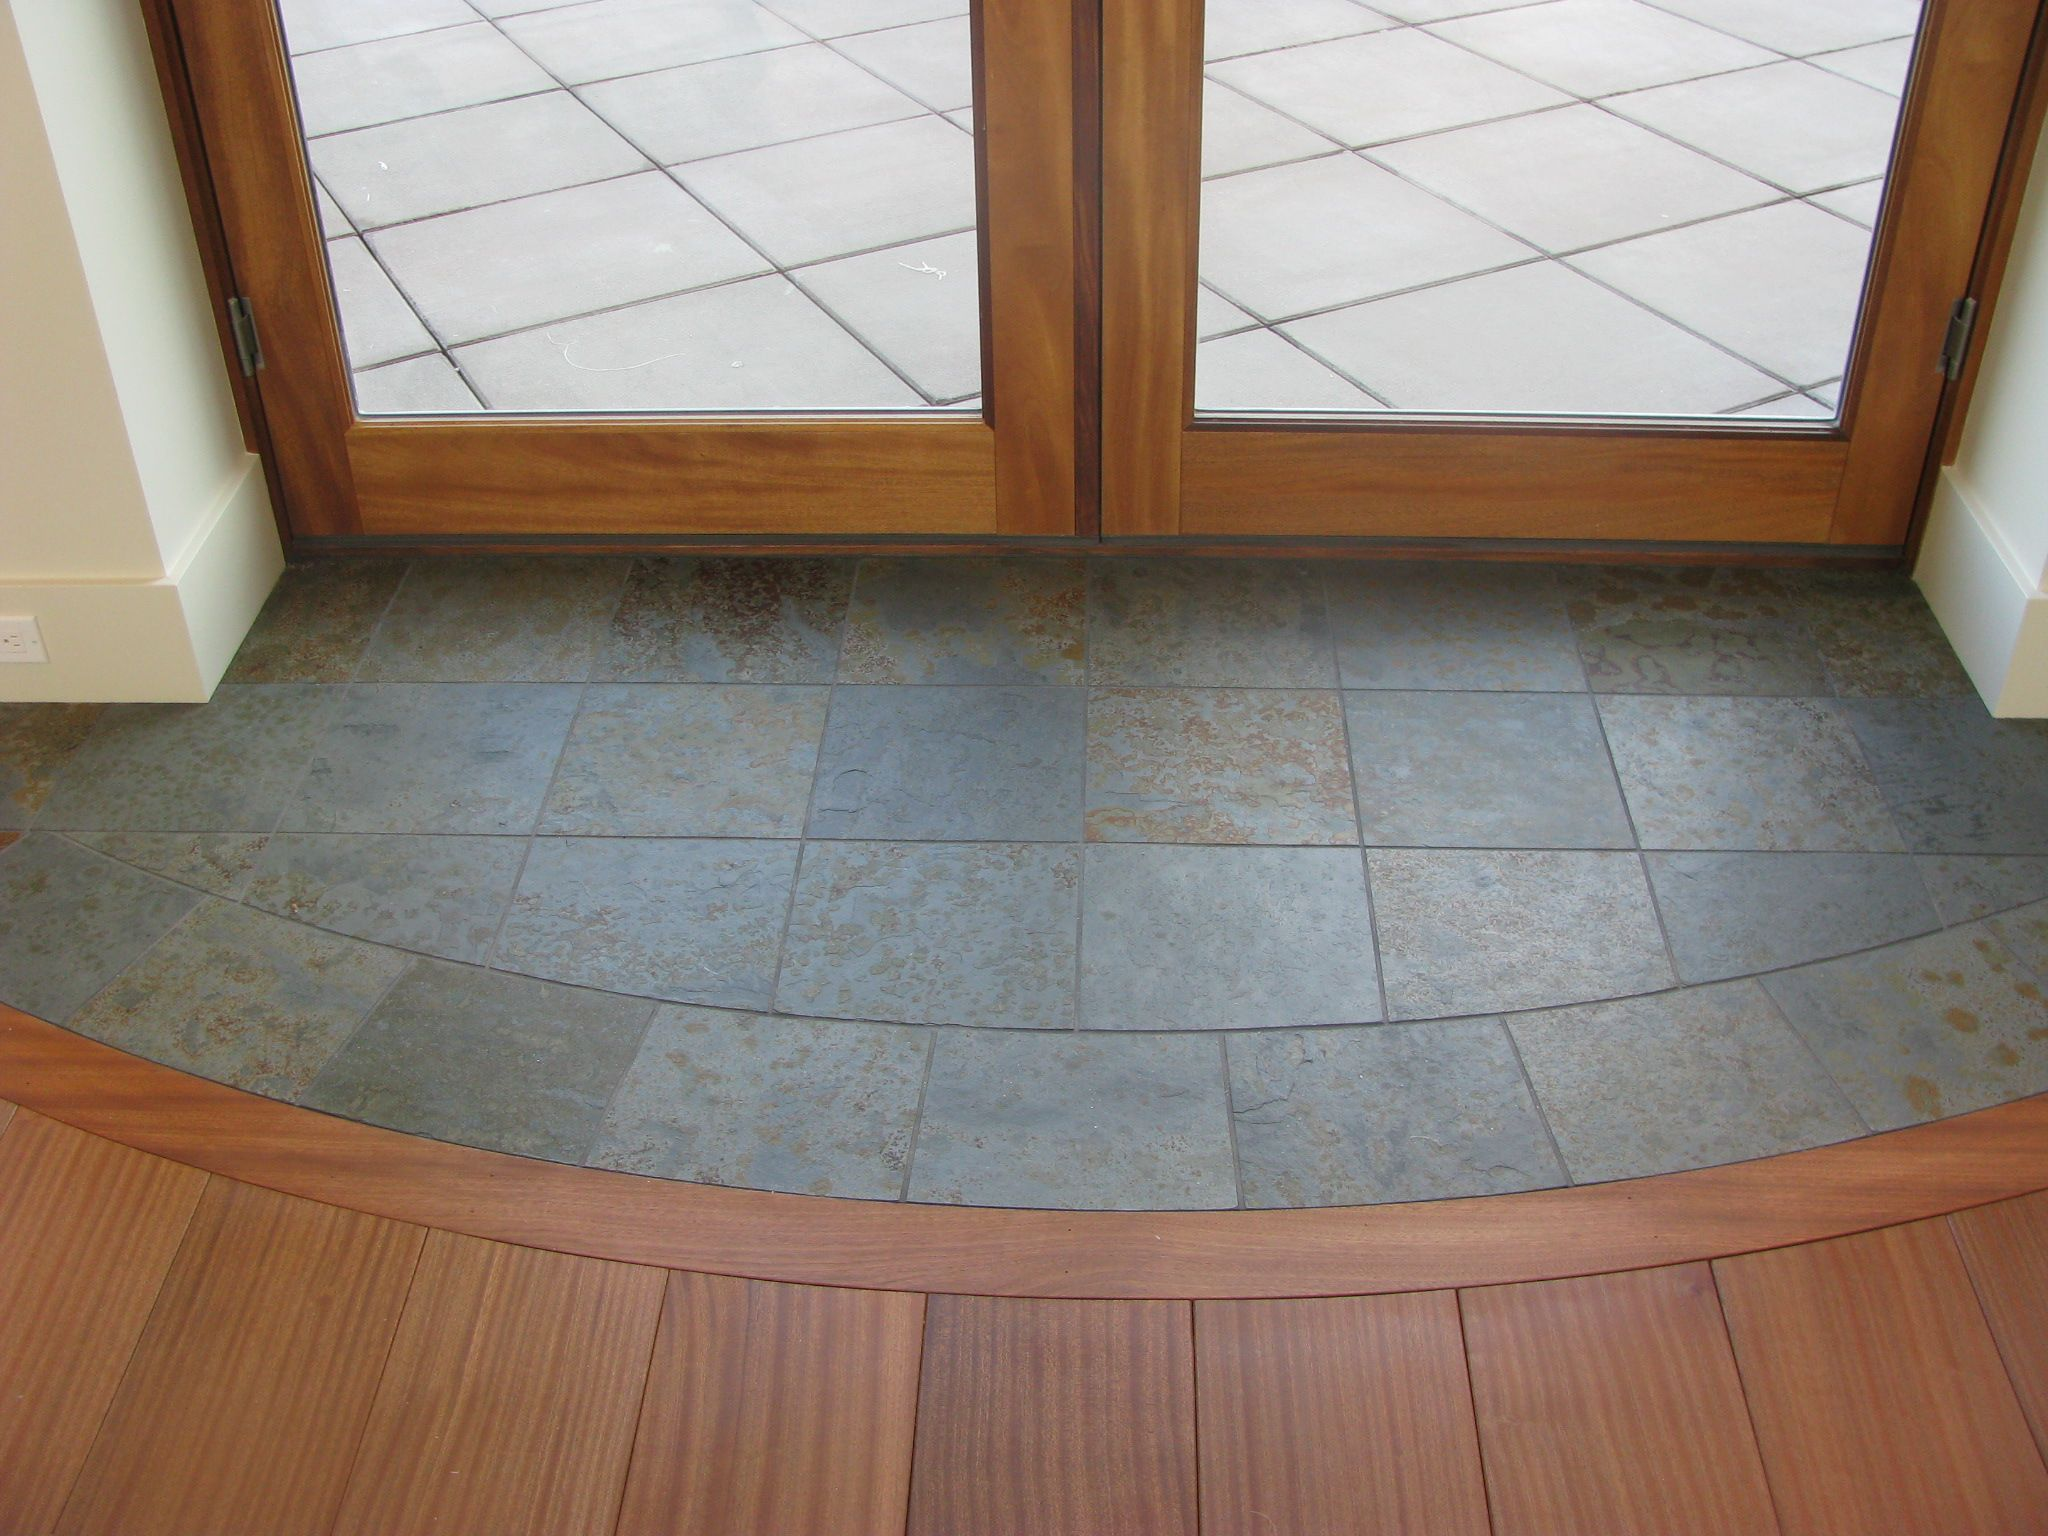 Slate Entryway To Protect Hardwood Floors At French Door For When I Finally Rip All The Tile And Carpet Out Do